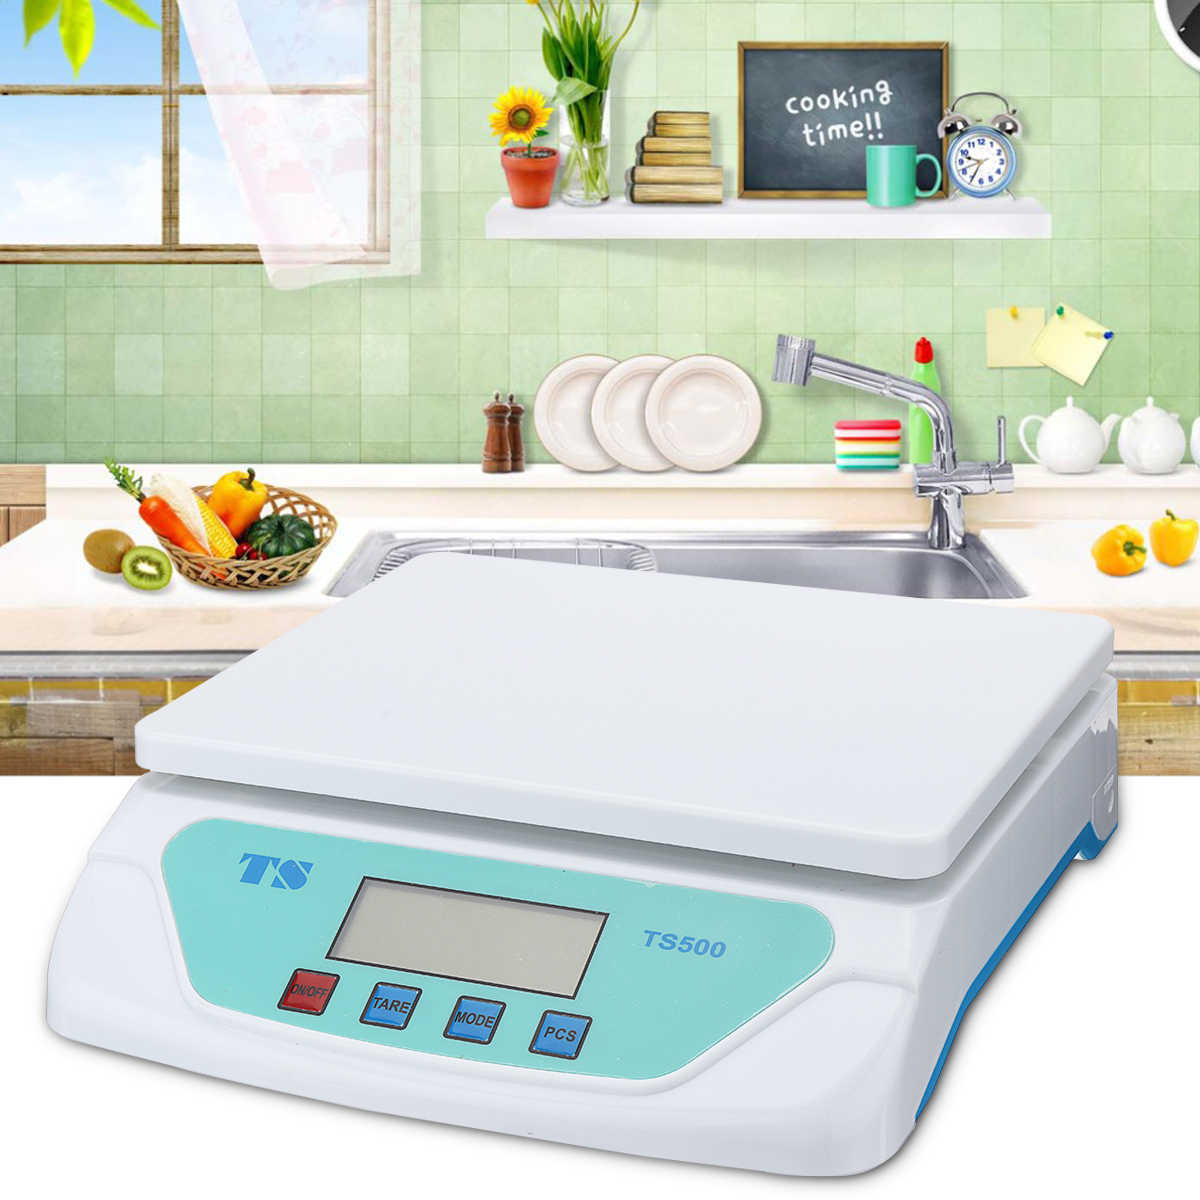 30kg electronic  scales Weighing Kitchen Scales Grams Balance LCD Display universal for Home Electronic Balance Weight